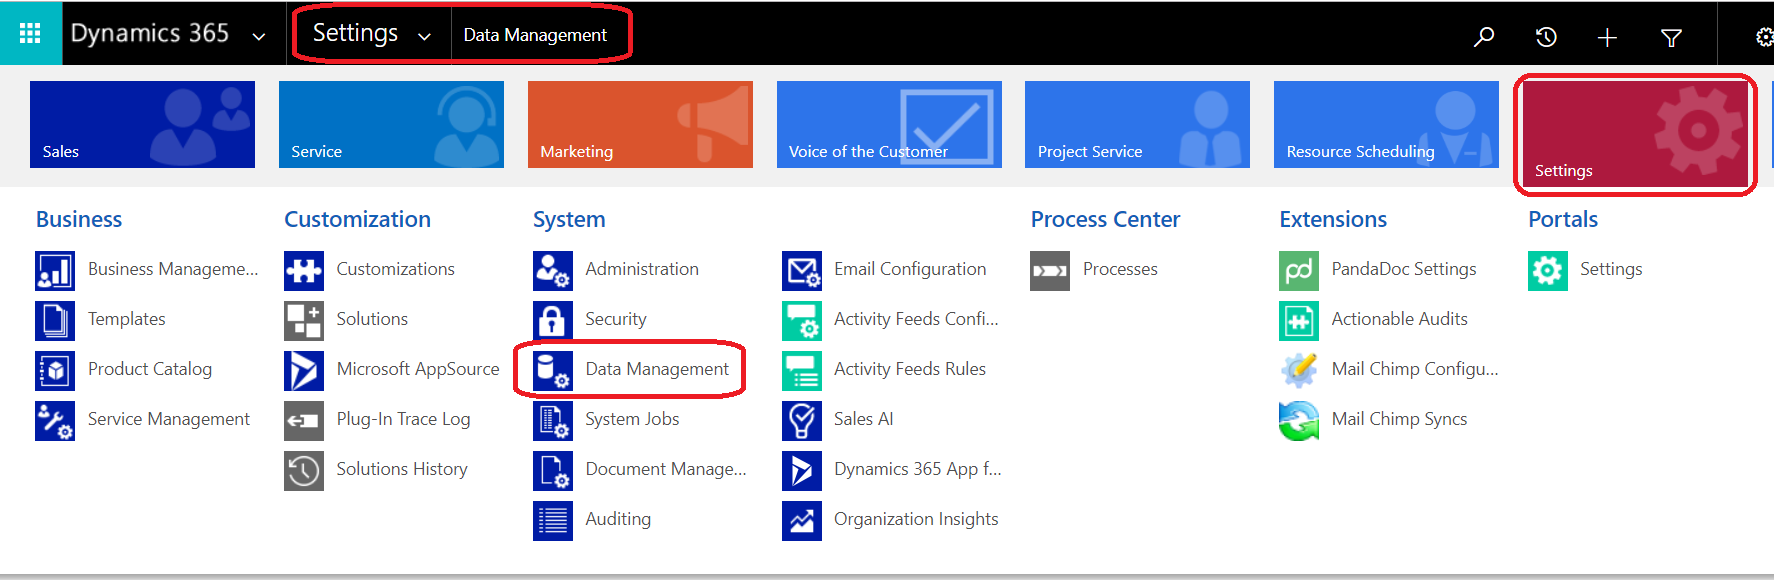 navigate_to_data_management_within_d365_crm_settings